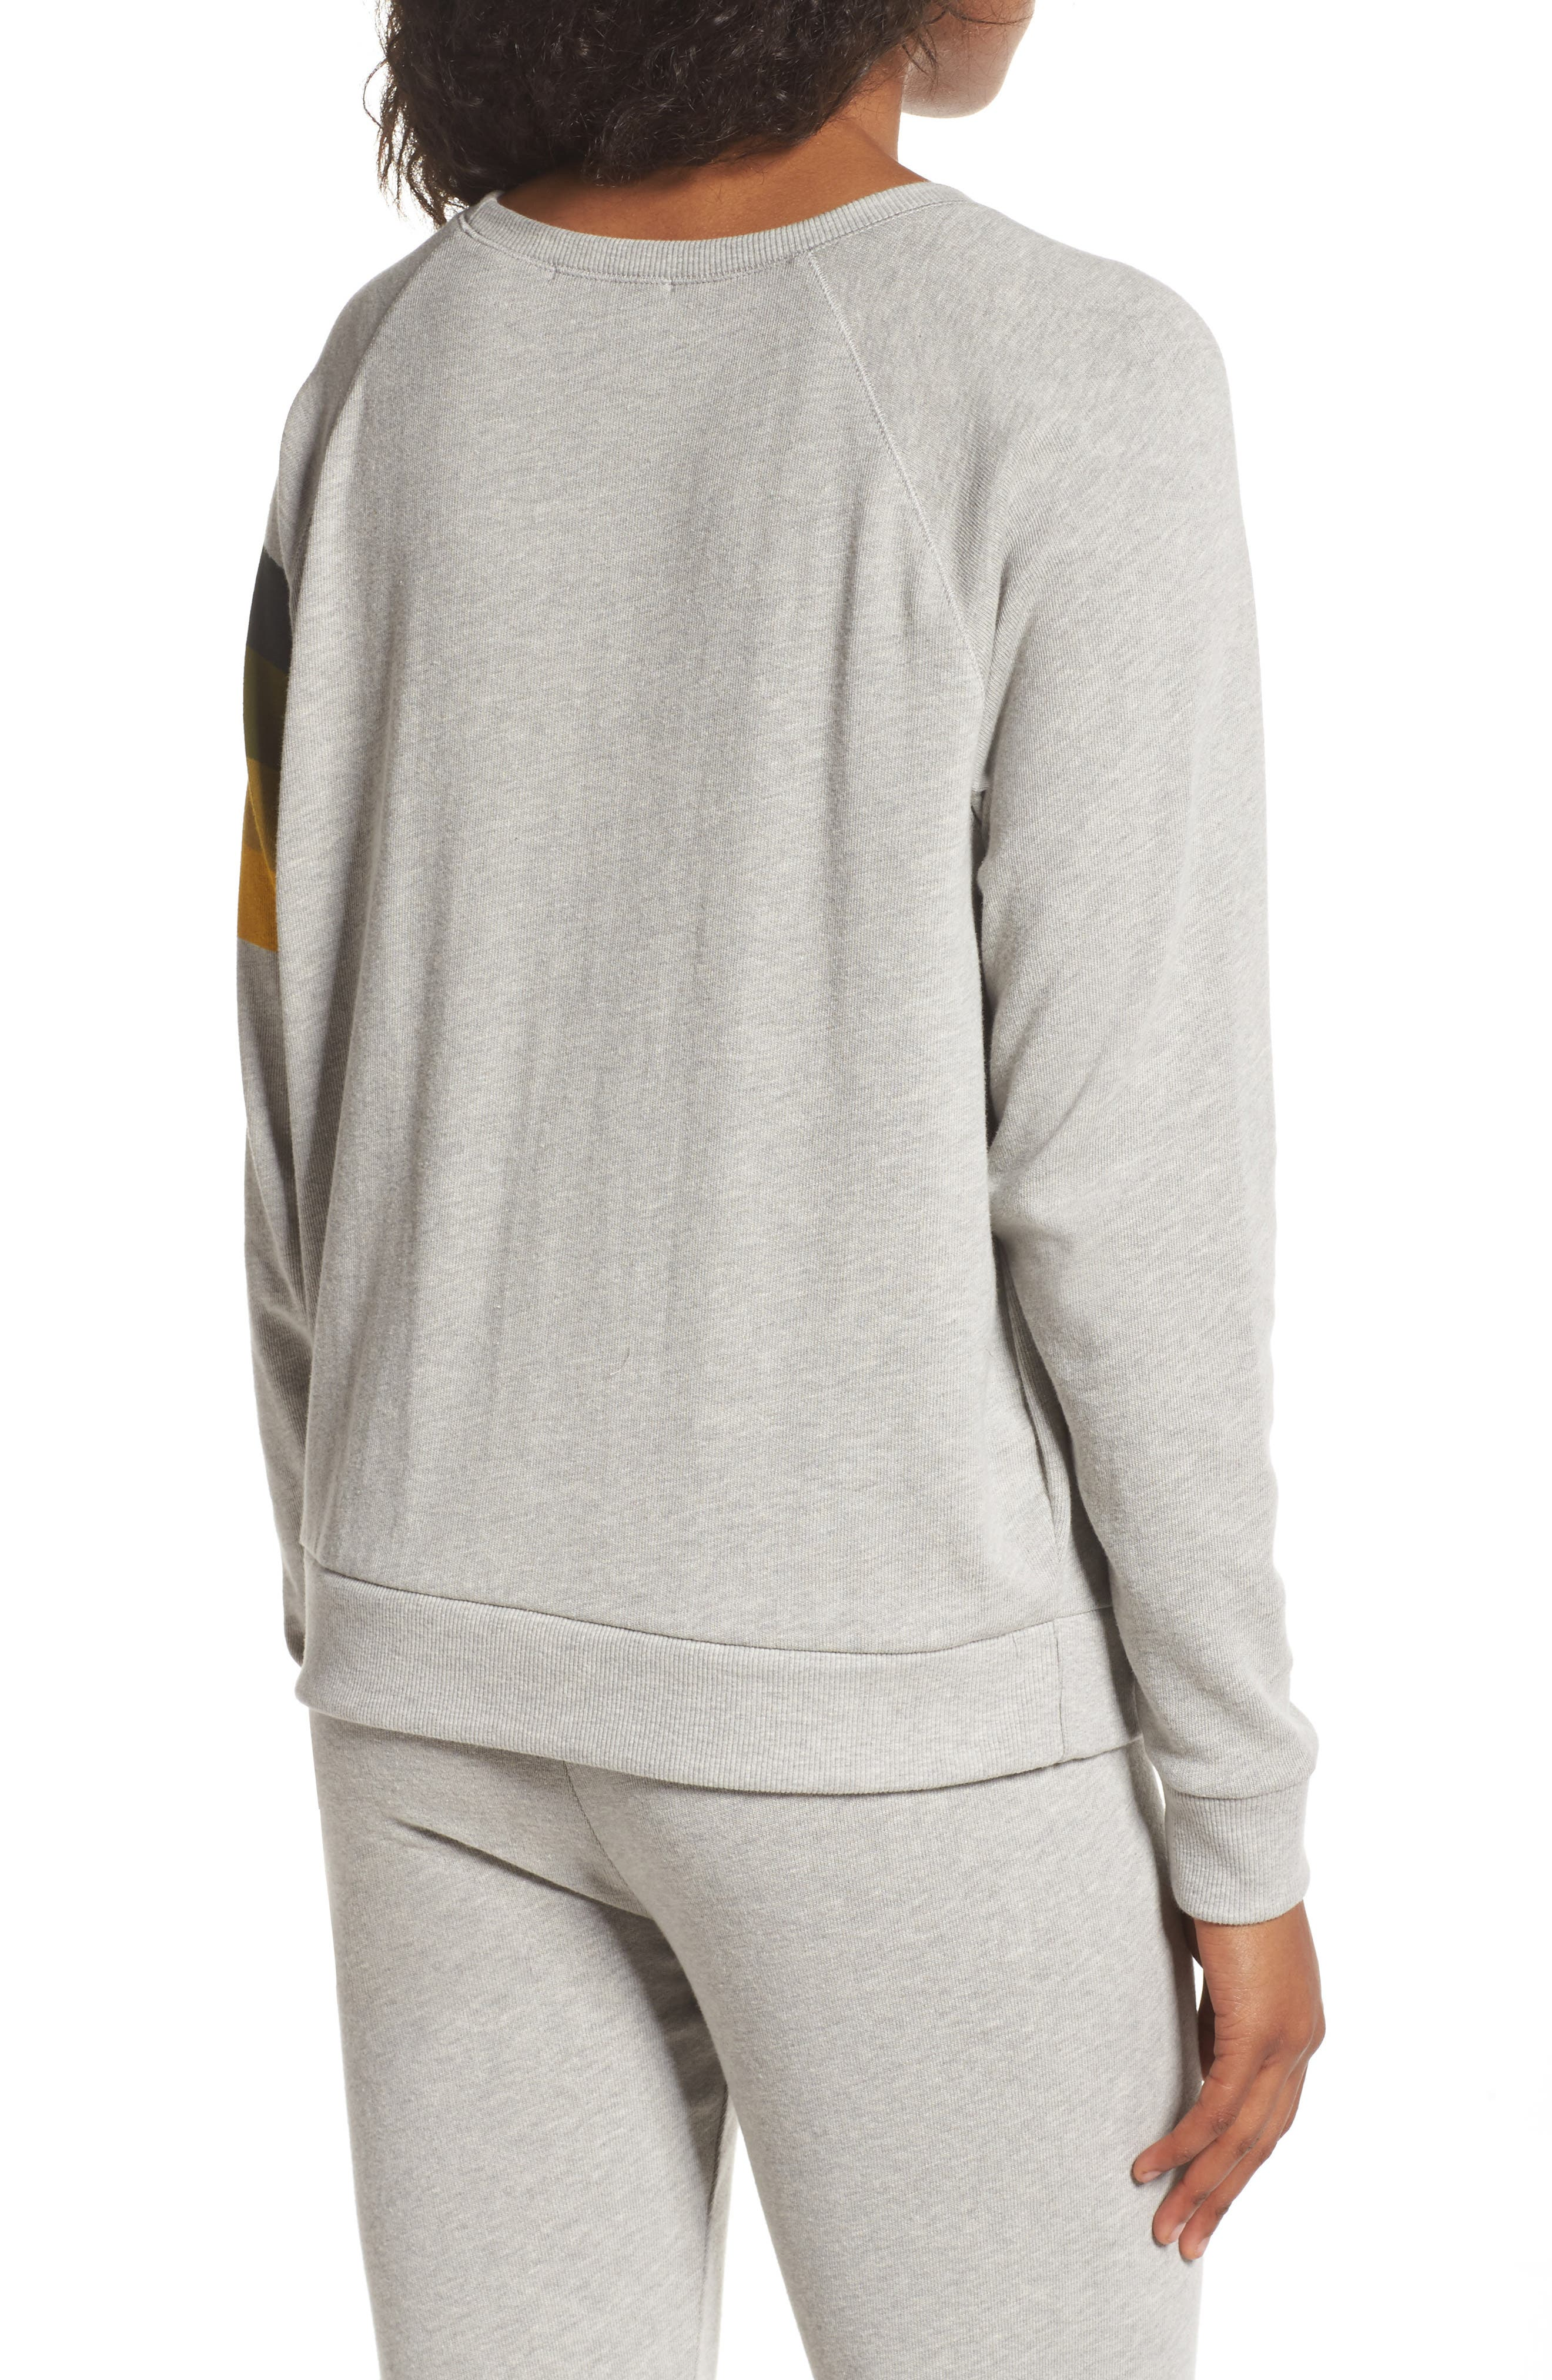 NF Green Bay Packers Hacci Sweatshirt,                             Alternate thumbnail 2, color,                             Dove Heather Grey